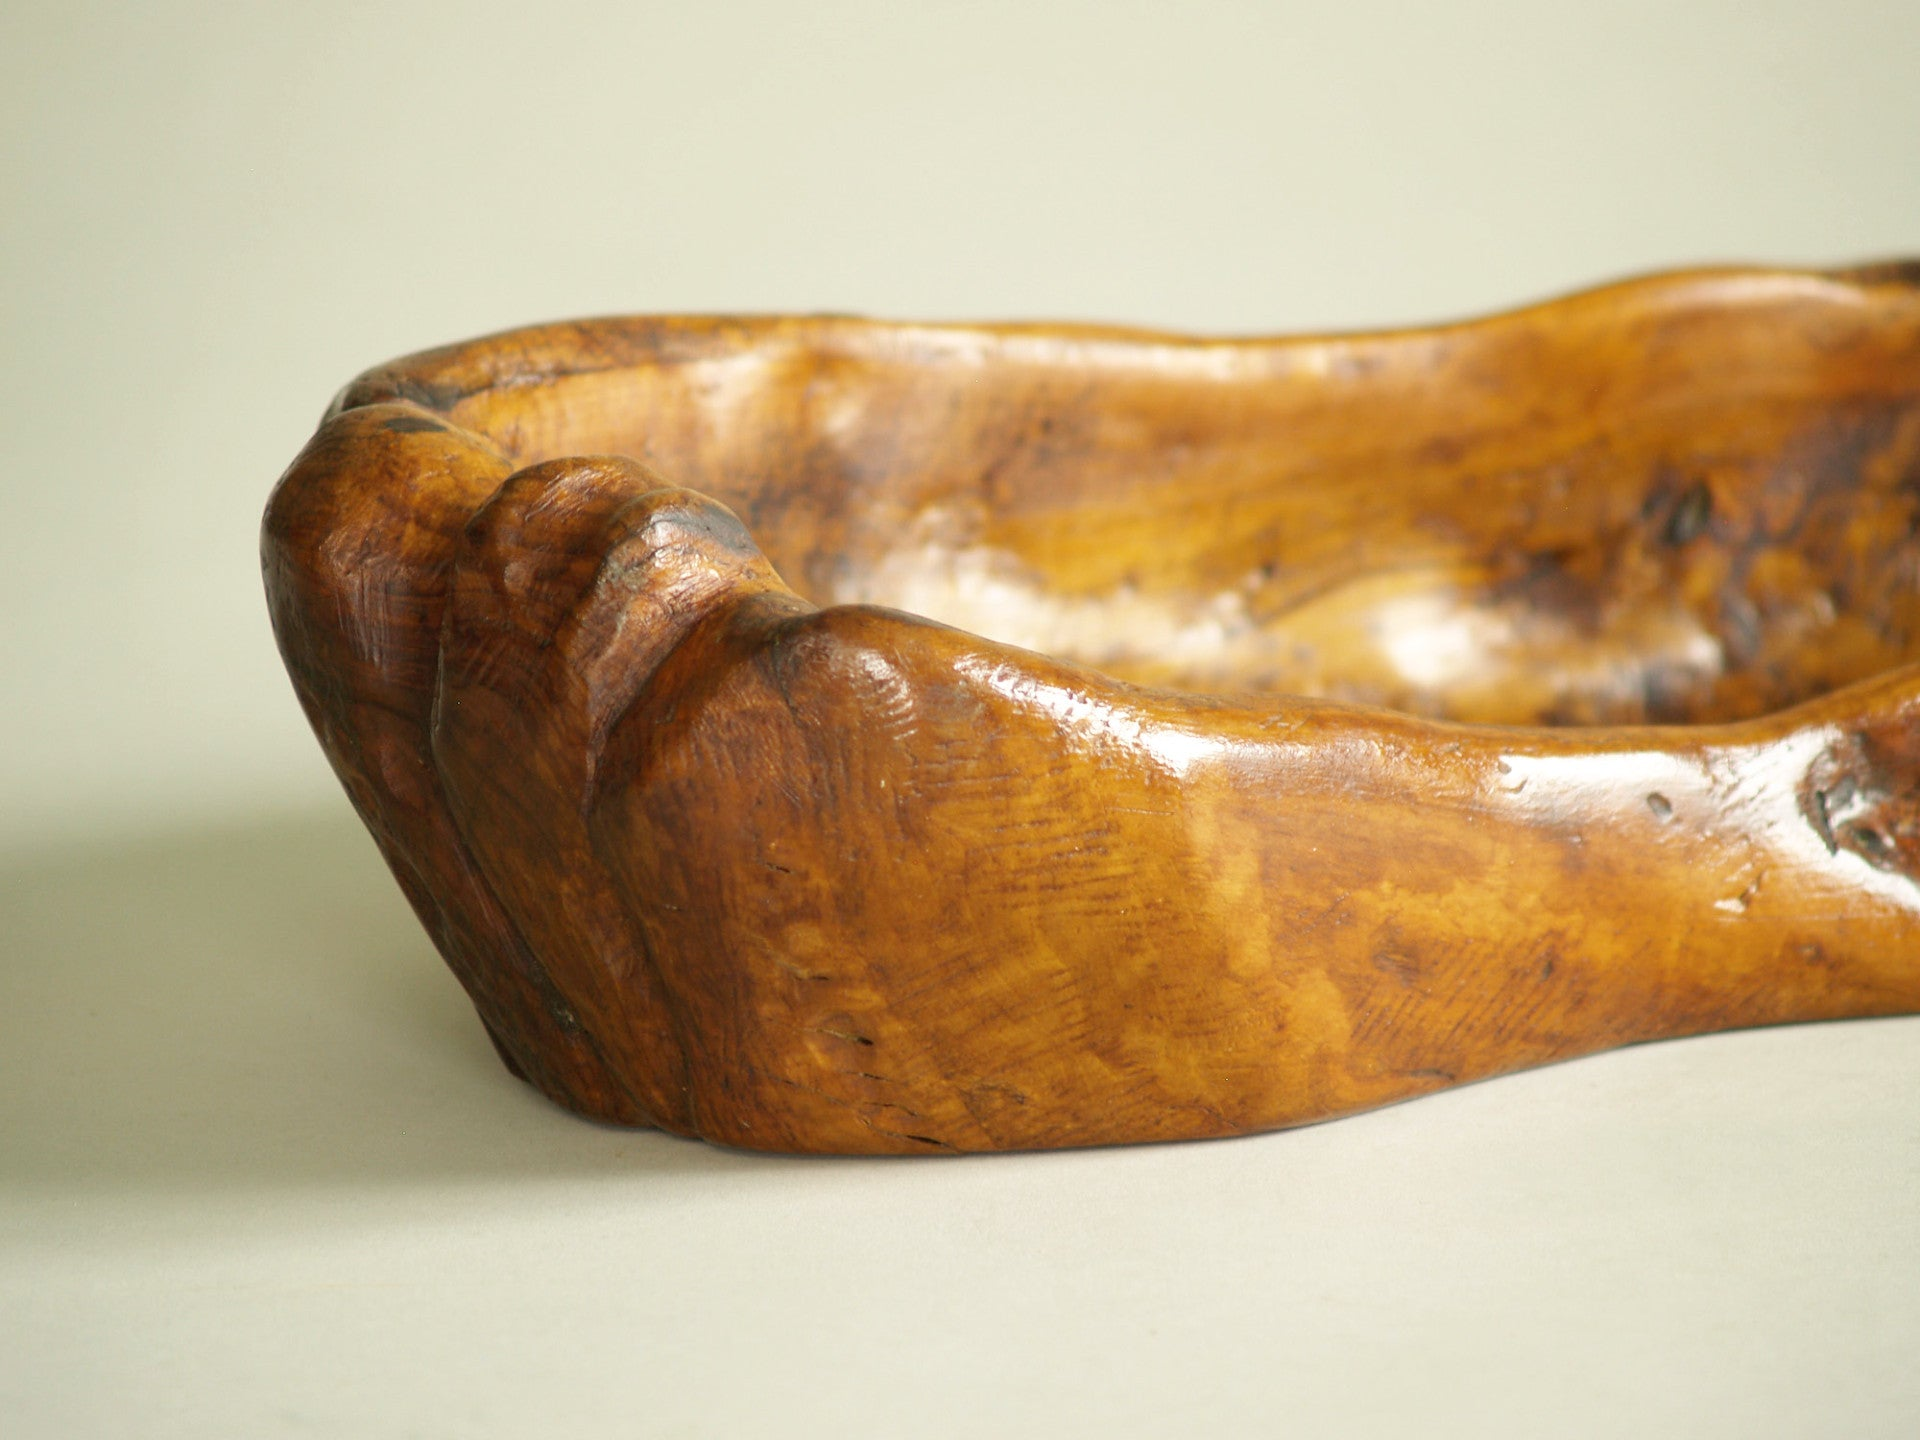 Rare ensemble de coupes monoxyles de forme libre par Hardoin, France (1977)..Set of freeform carved bowls by Hardoin, France (1977)